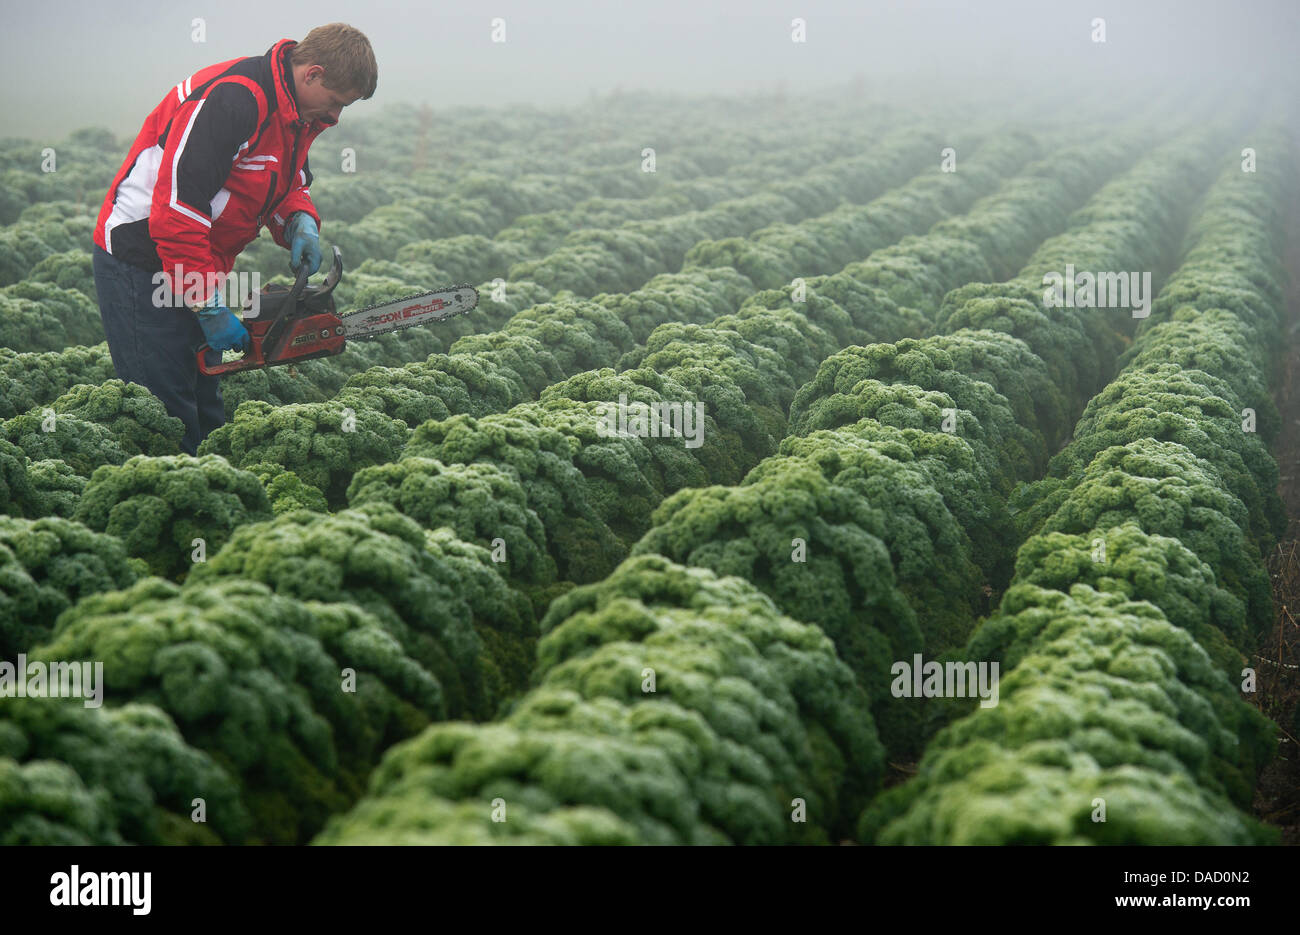 Gardener Michael Leschnik harvests green cabbage with a chainsaw on a field on the Leschnik market gardening farm - Stock Image